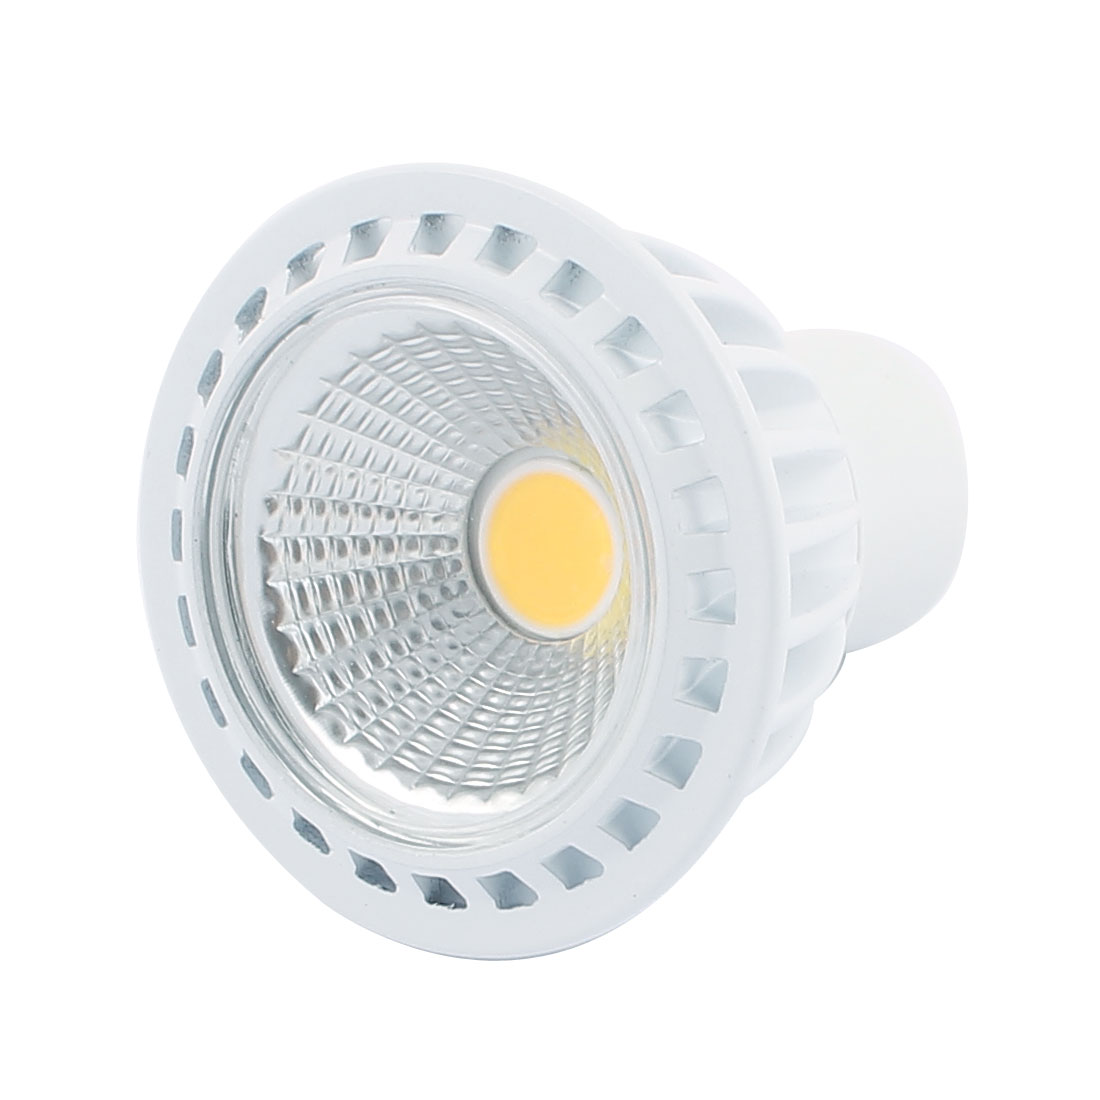 AC85-265V 5W GU5.3 COB LED Spotlight Lamp Bulb Practical Downlight Pure White